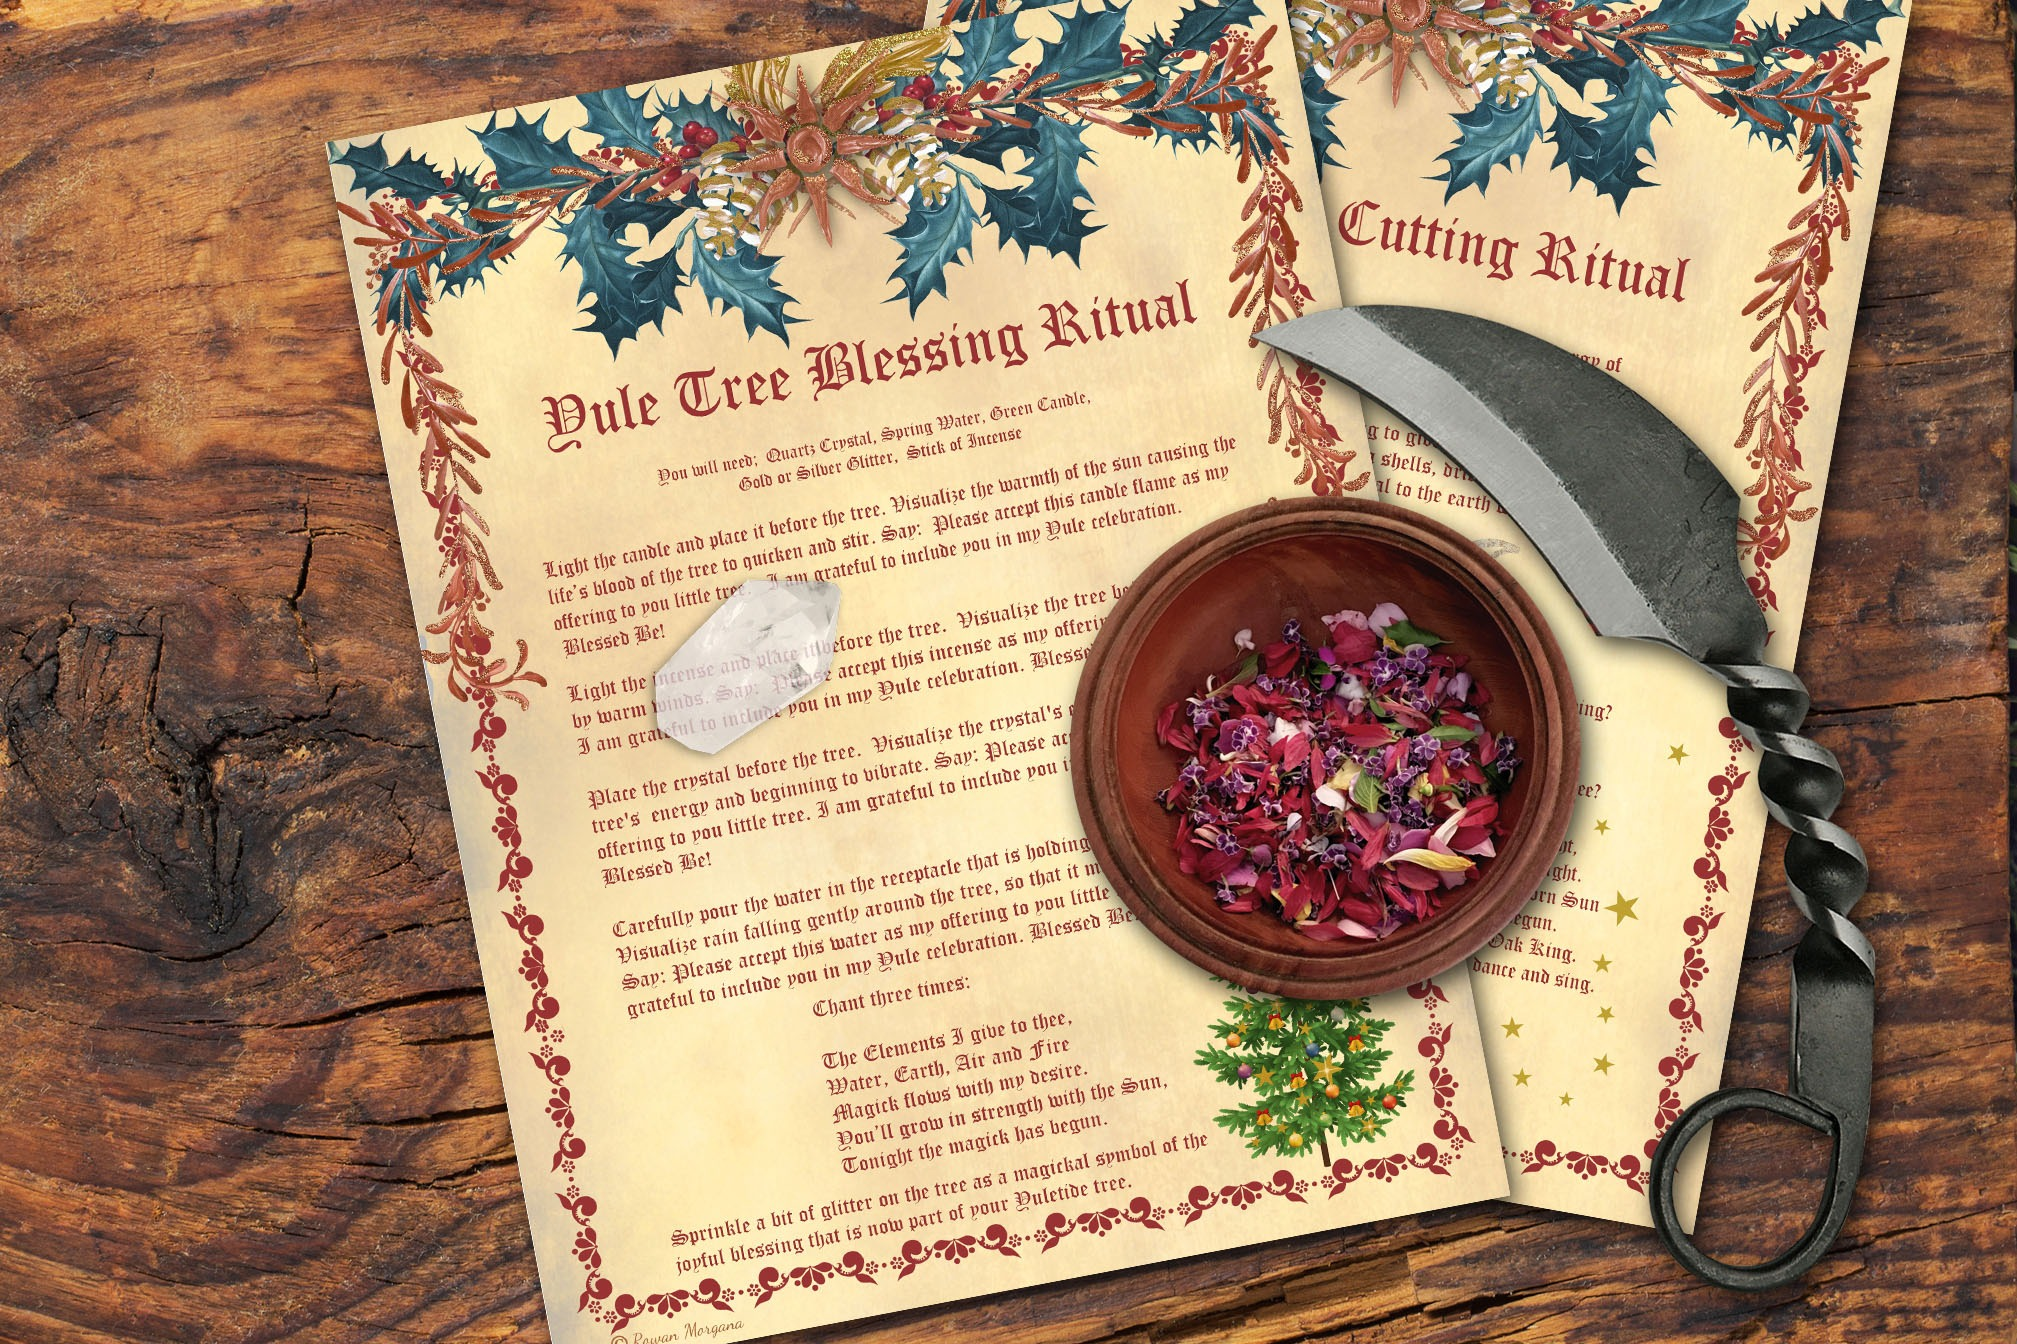 YULE TREE RITUALS - Cutting and Blessing